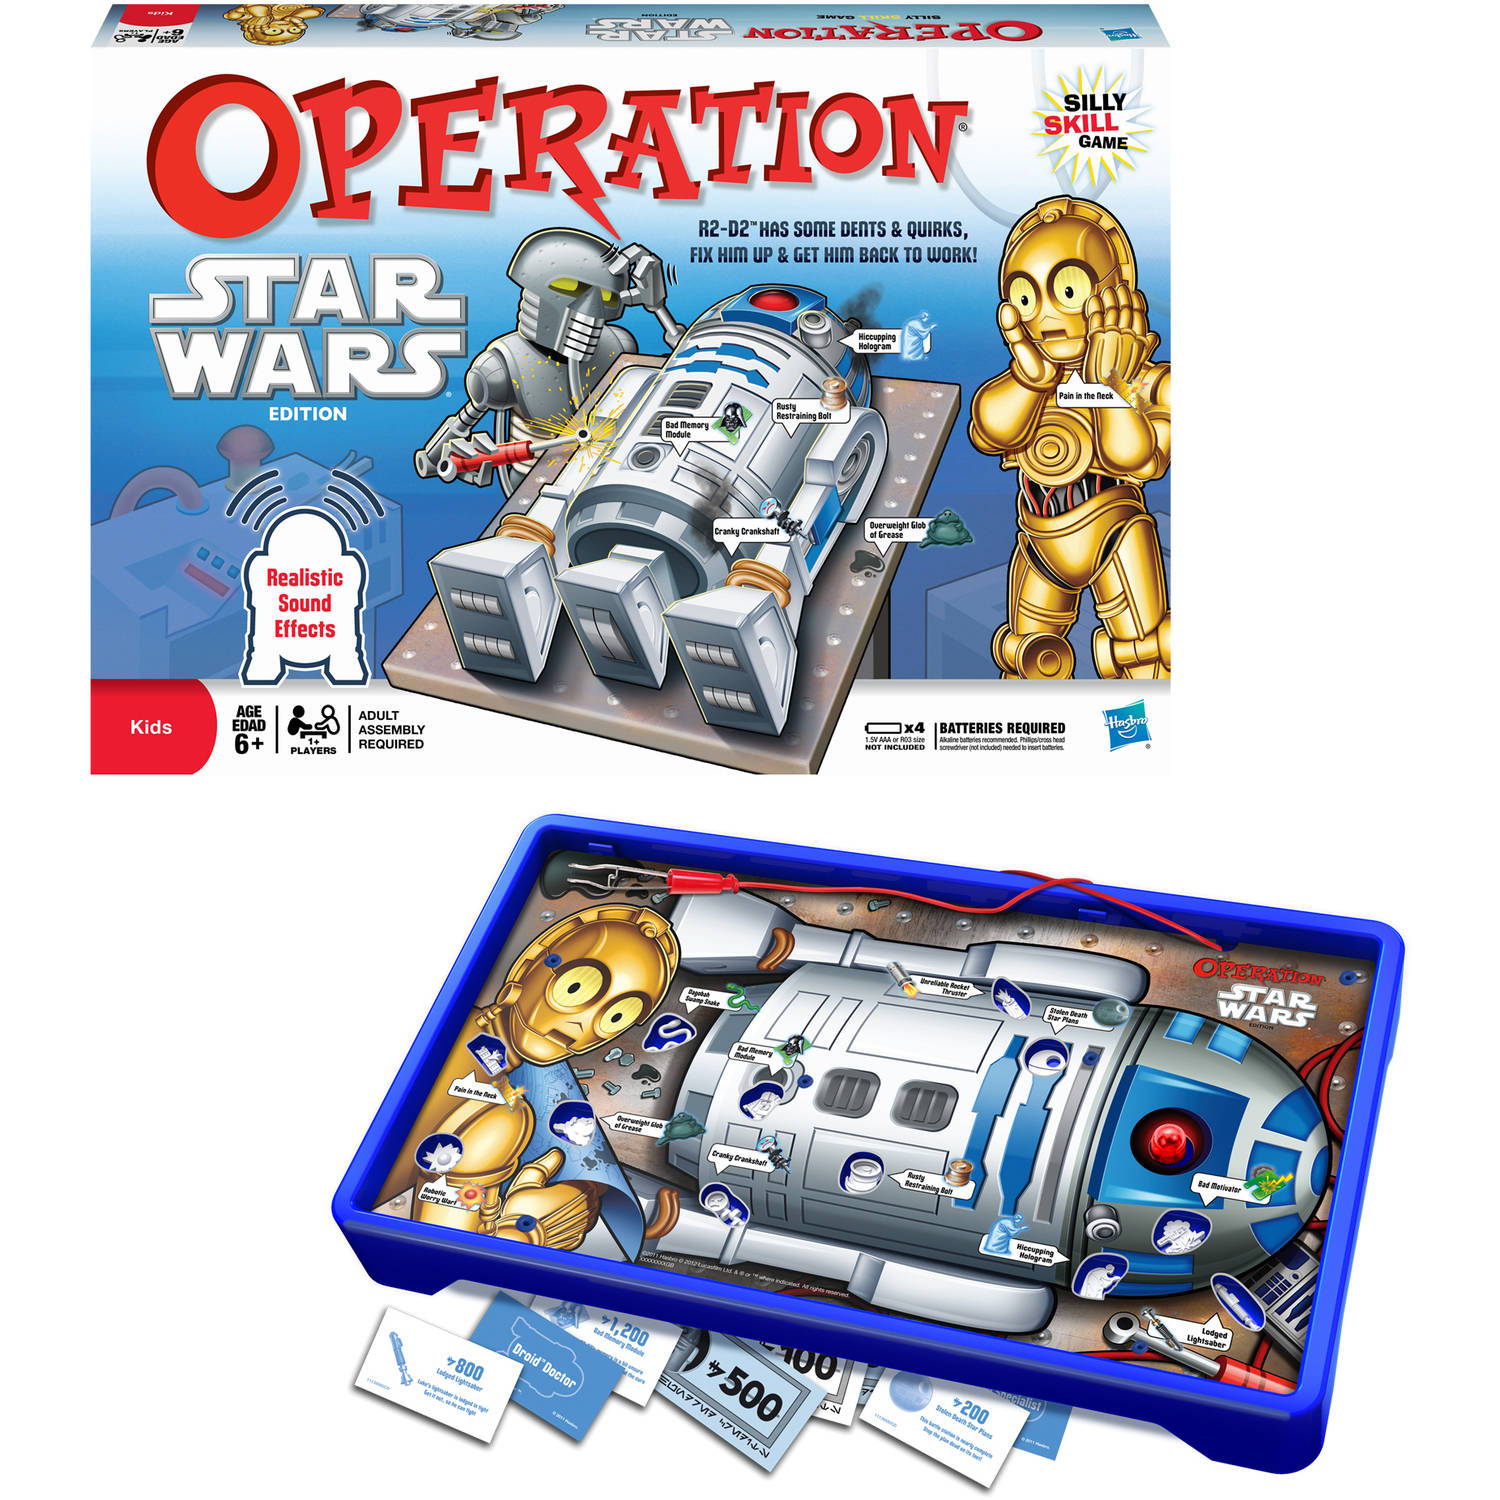 Operation Star Wars Edition